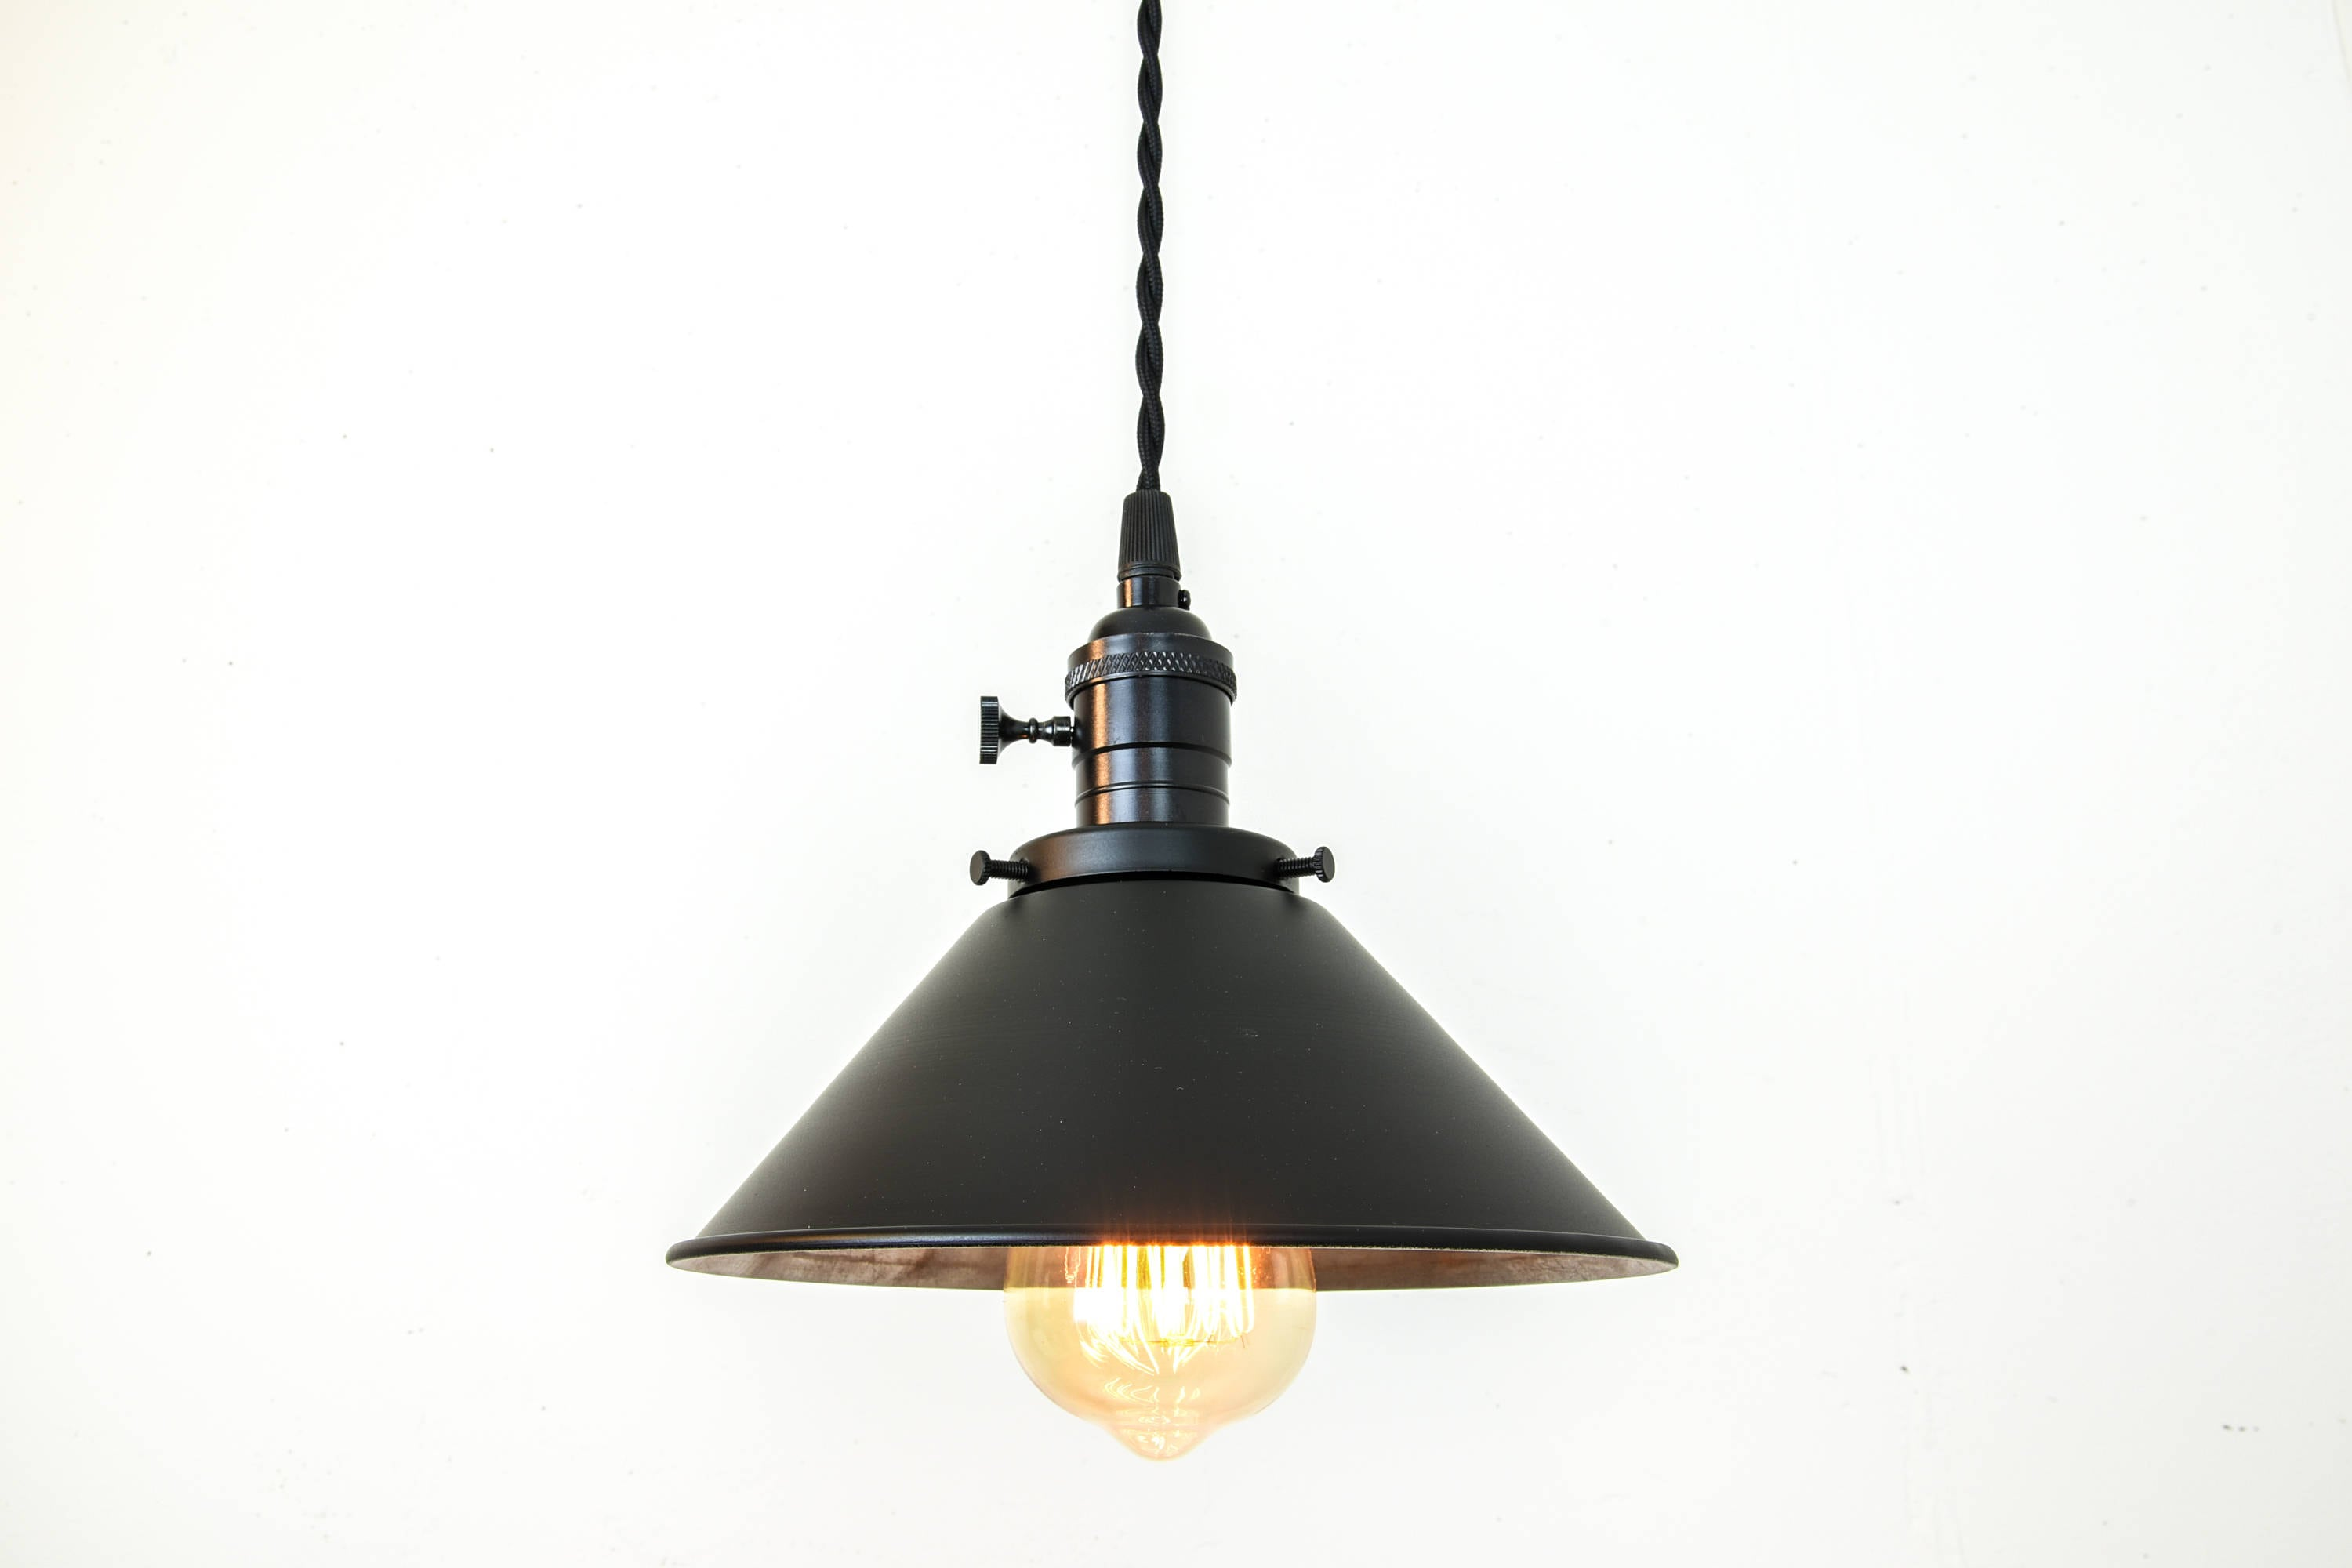 unique light fixtures unusual black pendant light country fixture hanging plug in unique ceiling lamp farmhouse